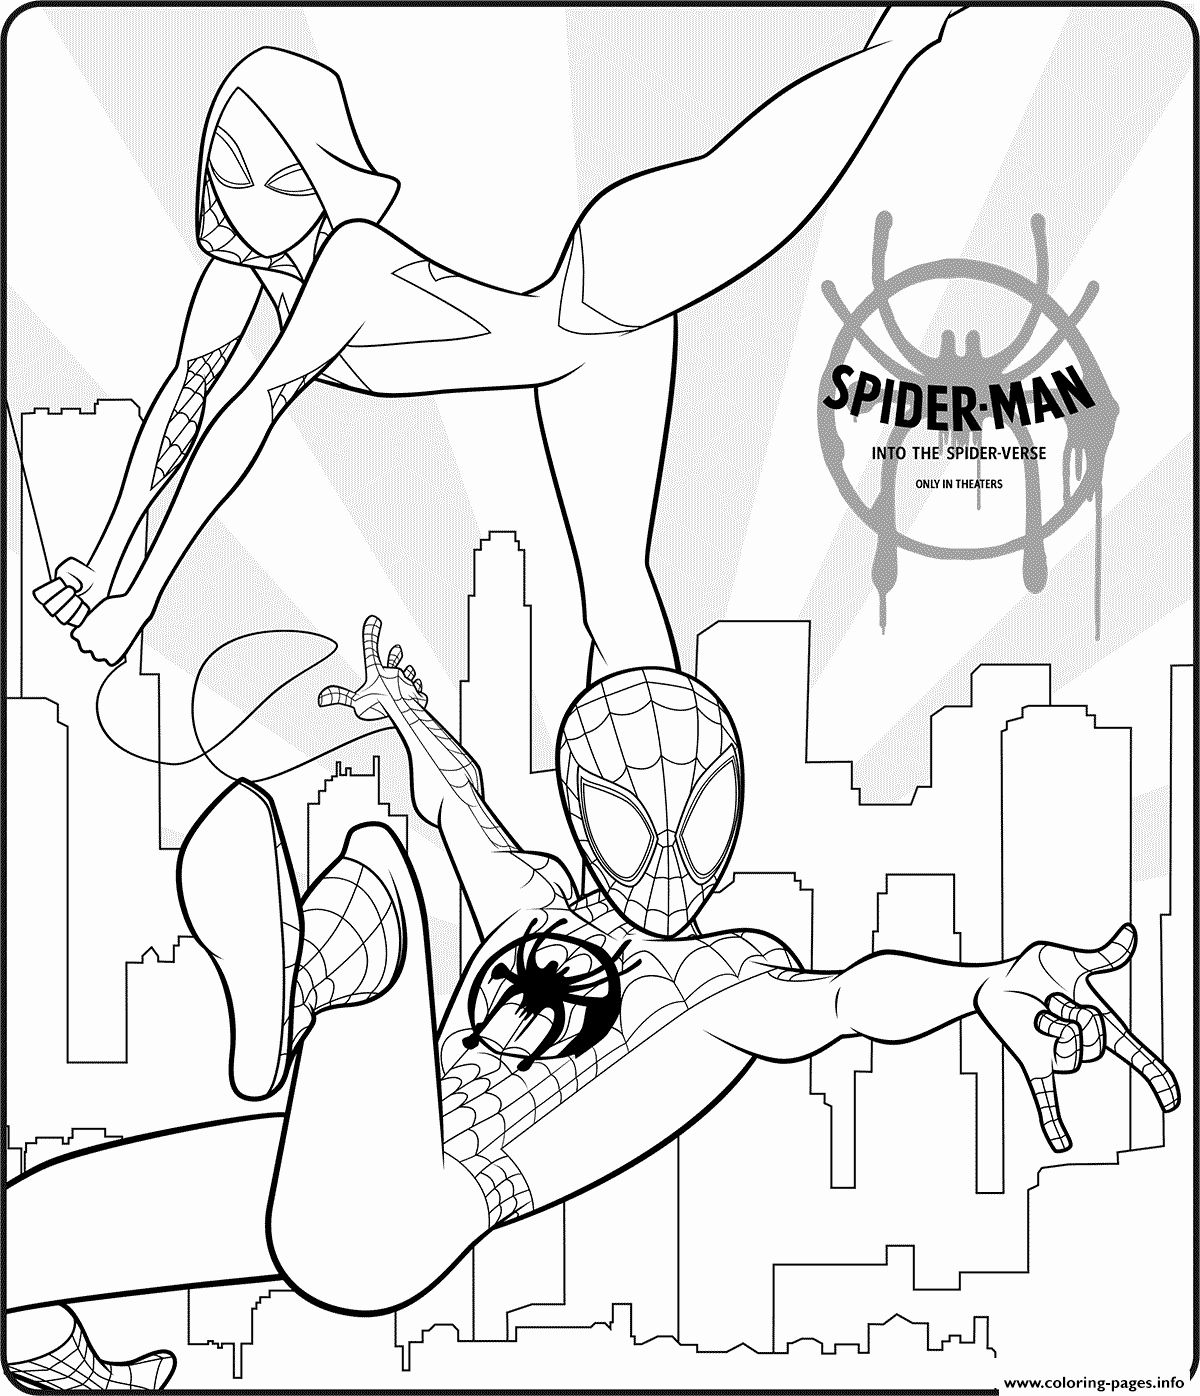 Miles Morales Coloring Page Fresh Spider Man Into The Spider Verse Coloring Pages Printable In 2020 Avengers Coloring Pages Spiderman Coloring Coloring Pages